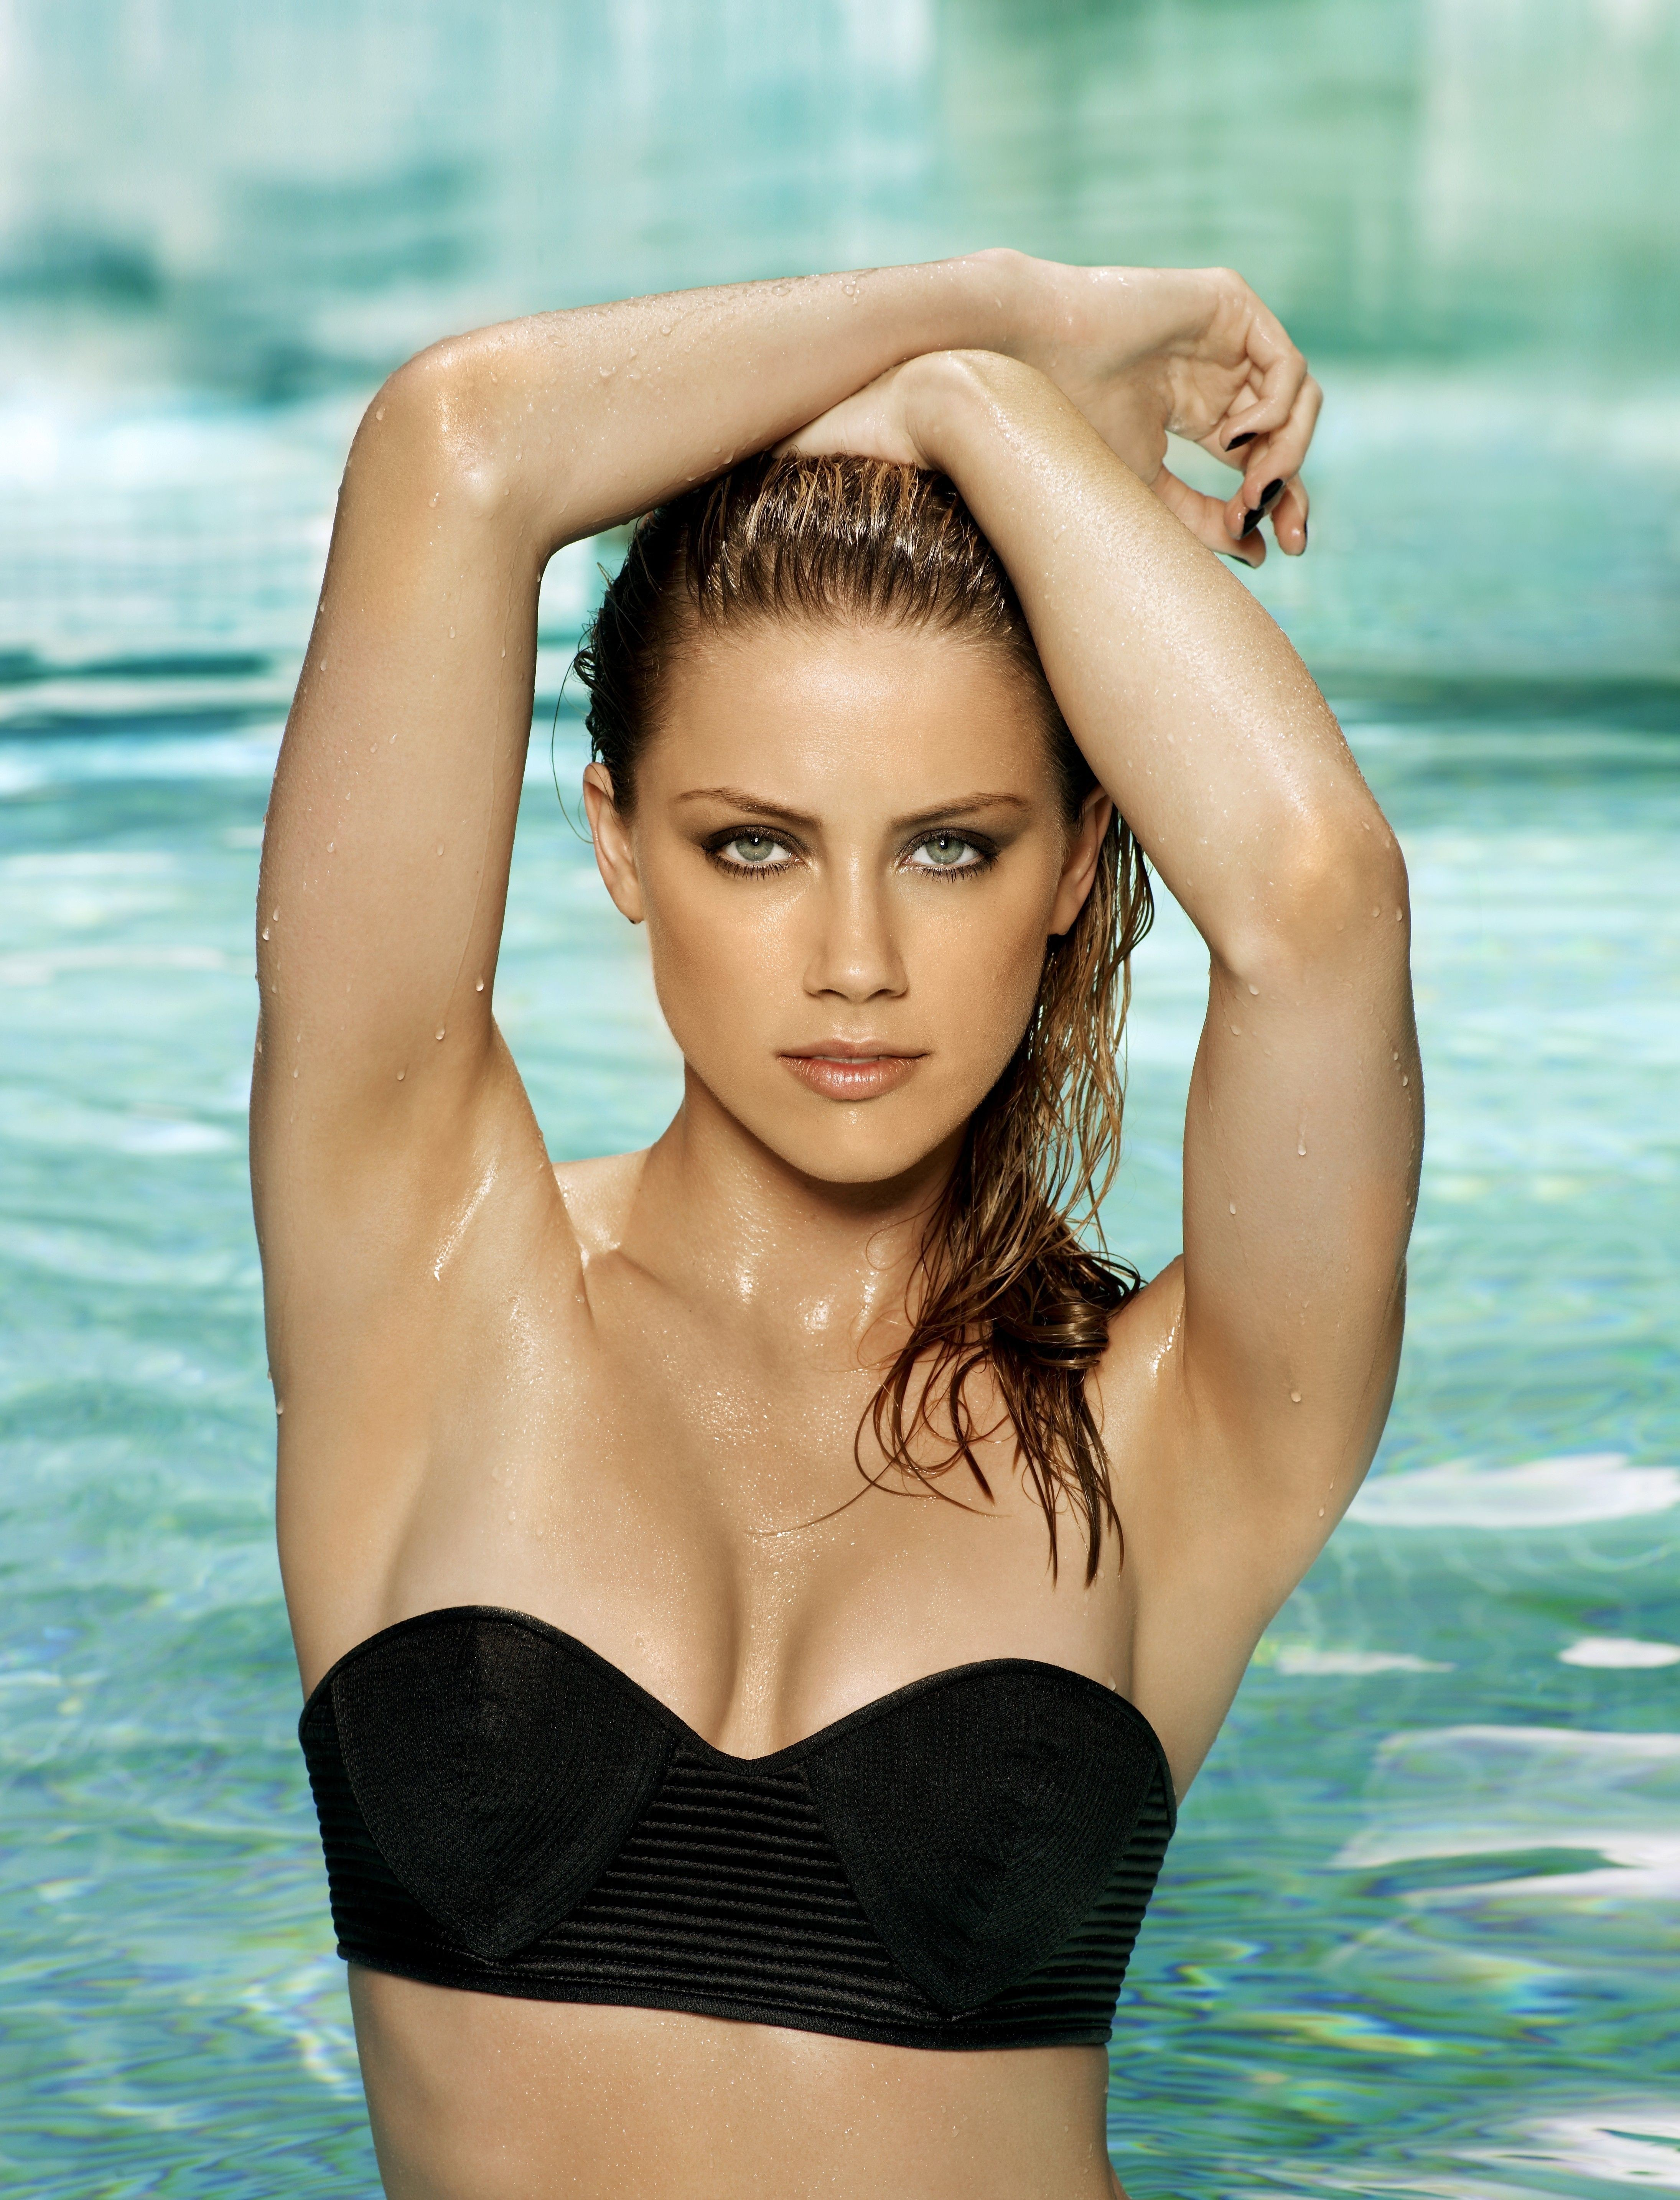 Women bikini amber heard HD Wallpaper